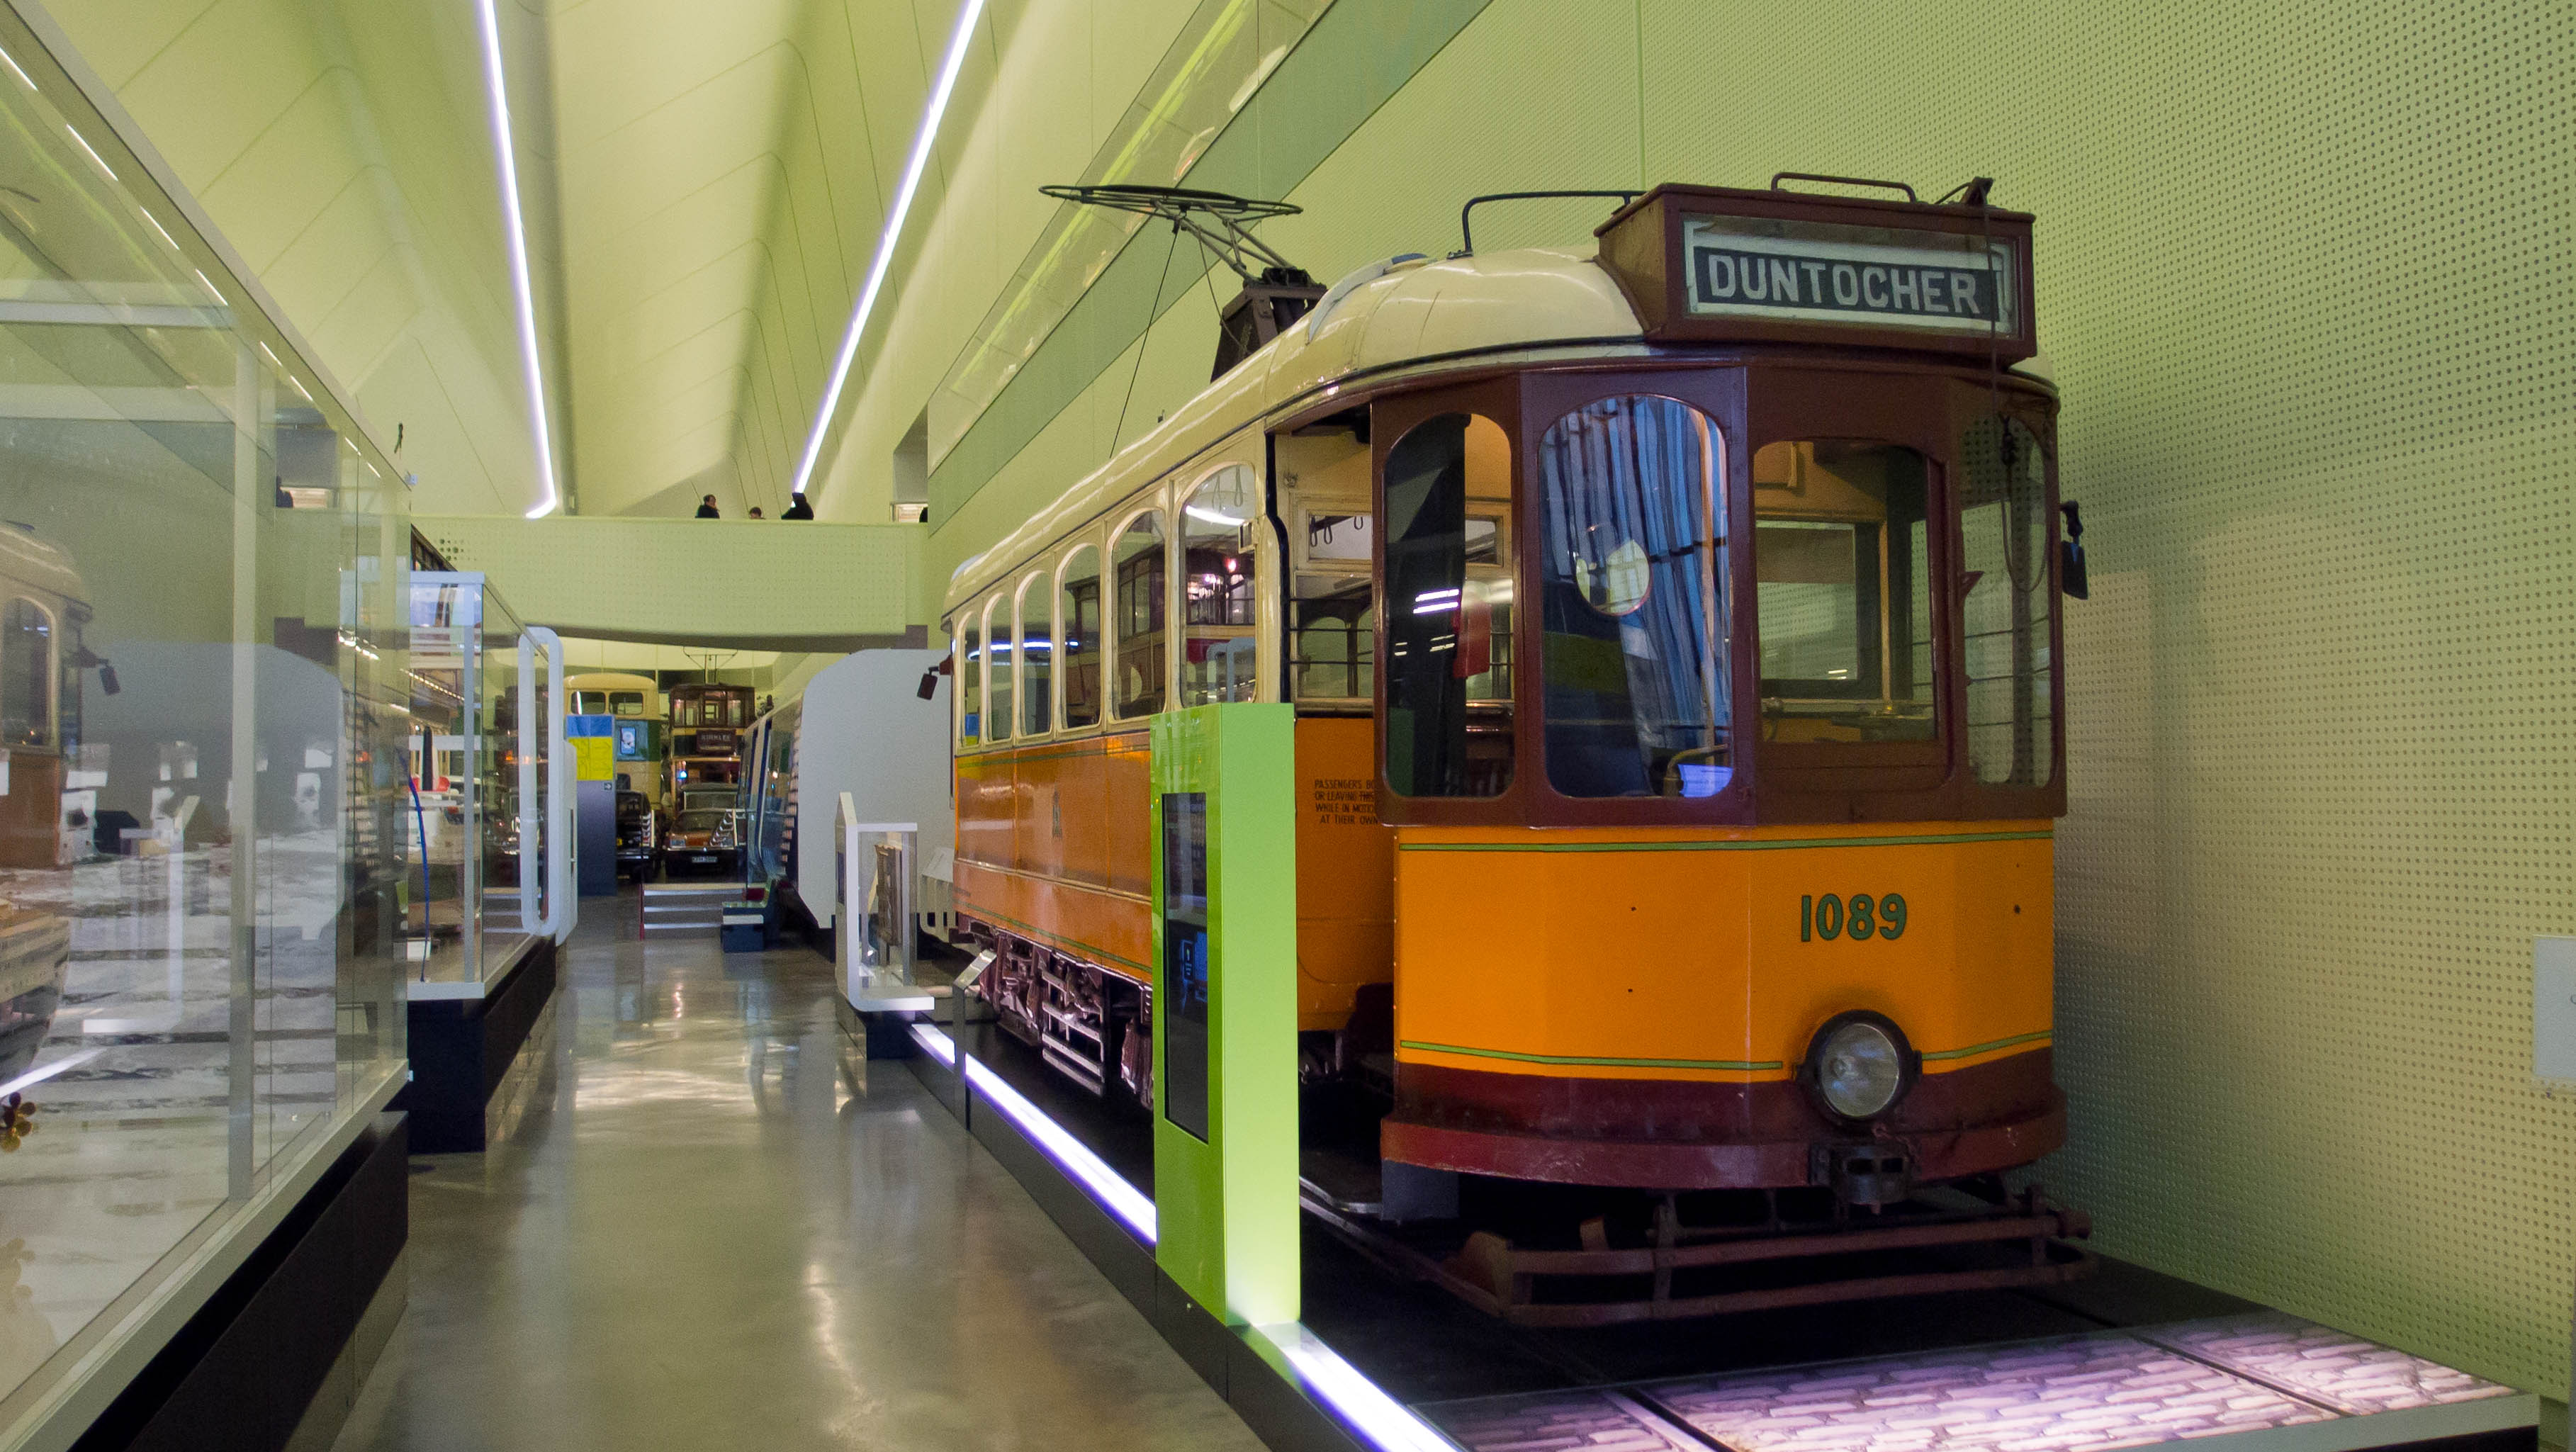 File:No 1089 single deck tram at the Riverside Museum.jpg